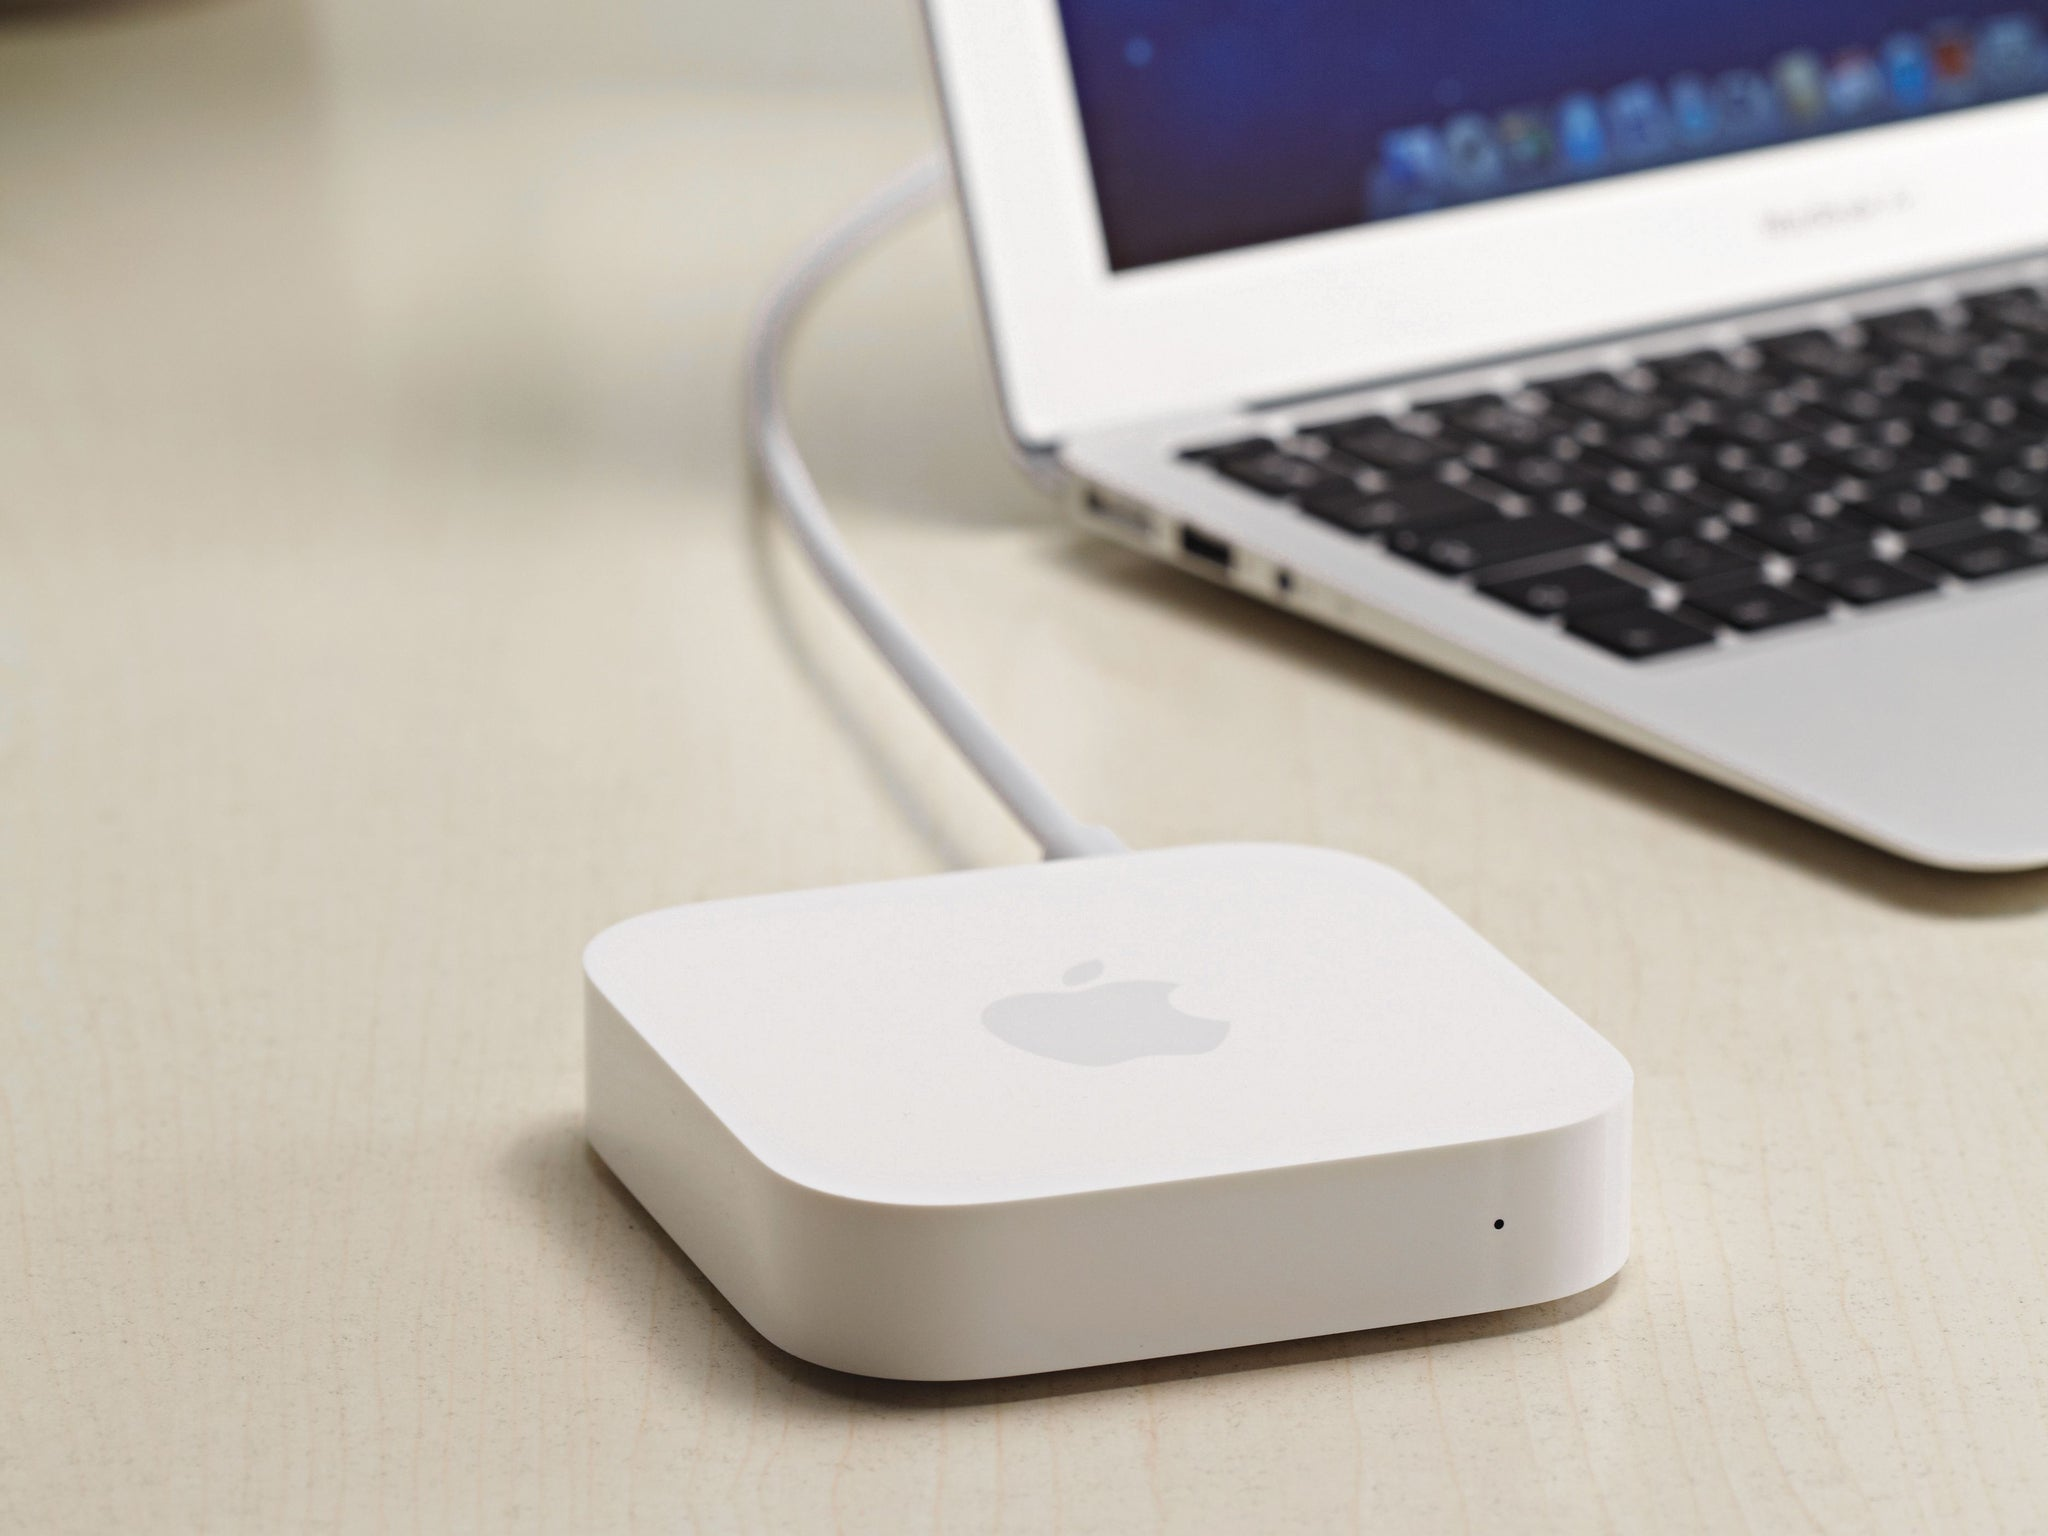 10 Best Home Routers The Independent